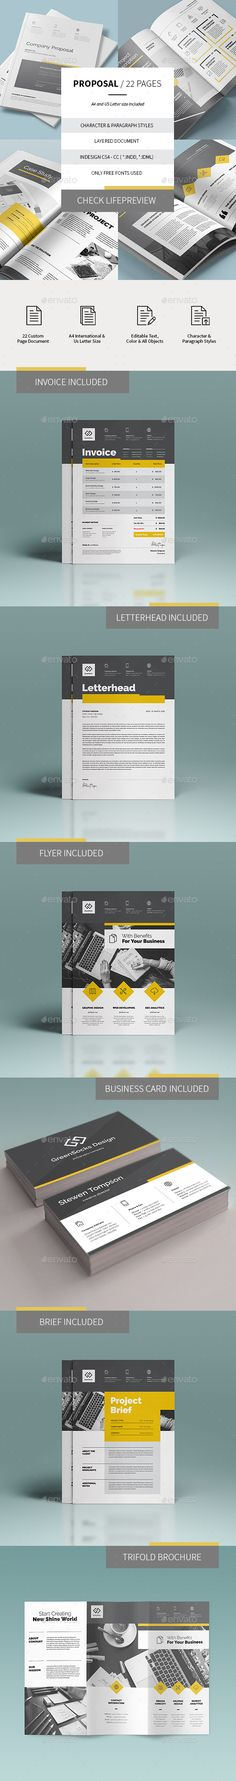 Modern Industry Leading Proposal Template InDesign INDD - 16 Pages - purchase proposal templates